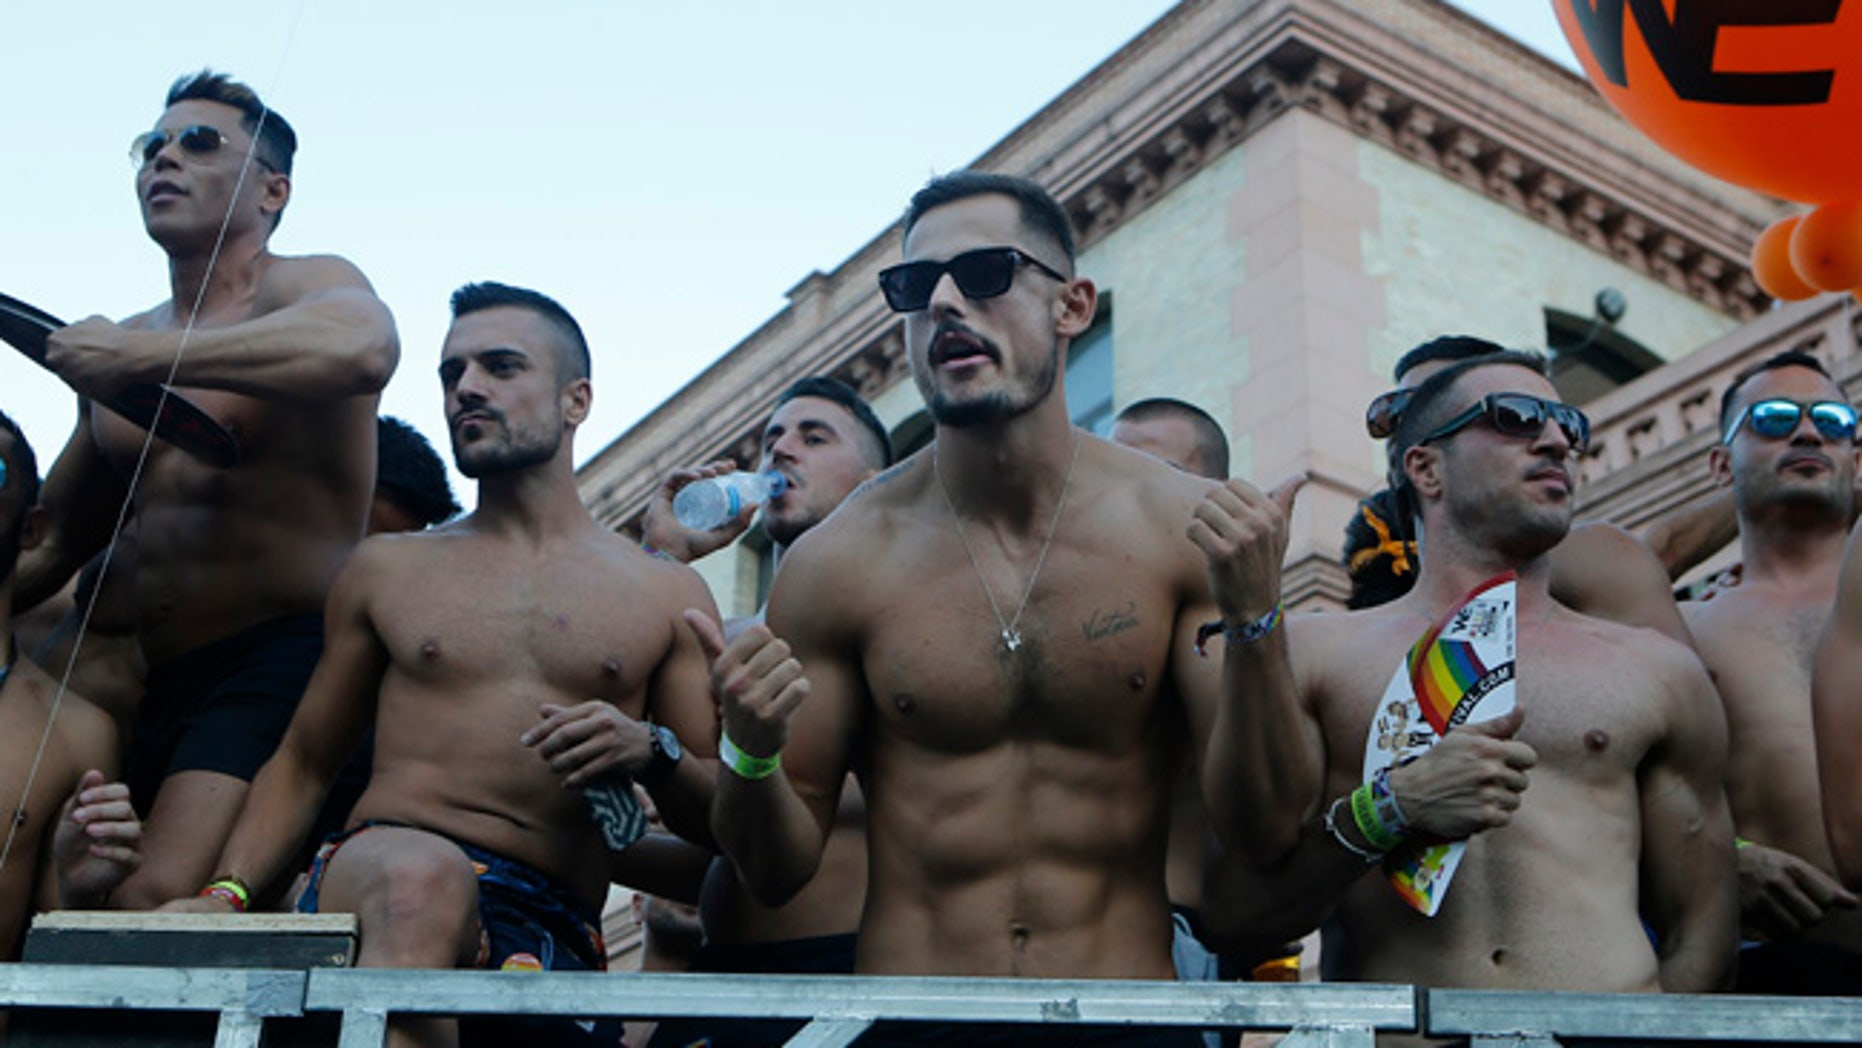 Participants dance on a open truck during the Gay Pride demonstration and parade, the climax of the 10-day WorldPride festivities, in Madrid, Spain, Saturday, July 1, 2017. Hundreds of thousands of people are marching in a global gay pride demonstration in Madrid under tight security measures on Saturday. (AP Photo/Paul White)